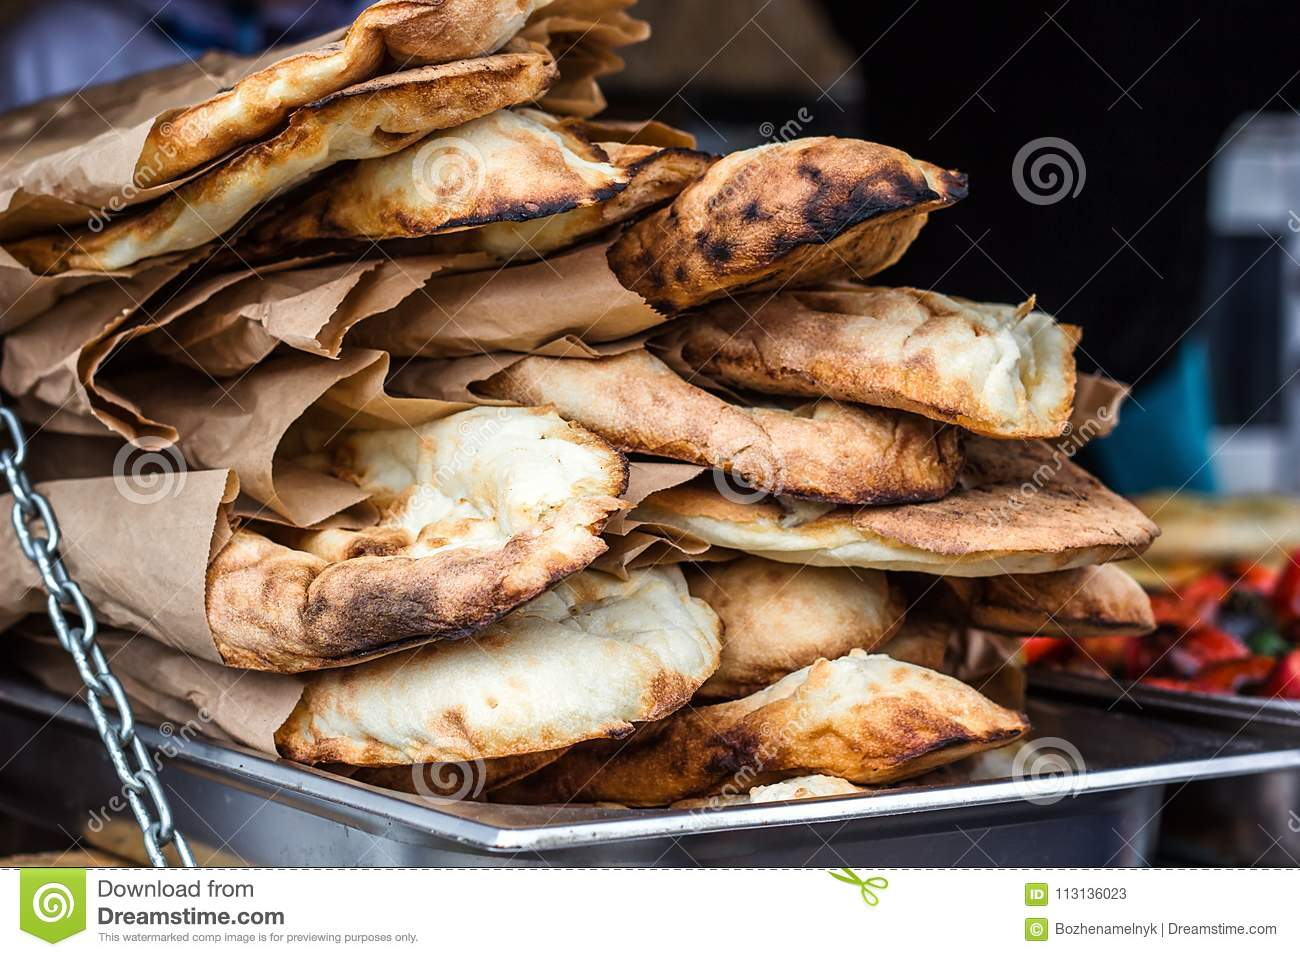 Lavash, Bakery Products fresh pastry sells pita market wheat tortillas close-up Caucasian kitchen Lavash Pita or Arabic bread trad